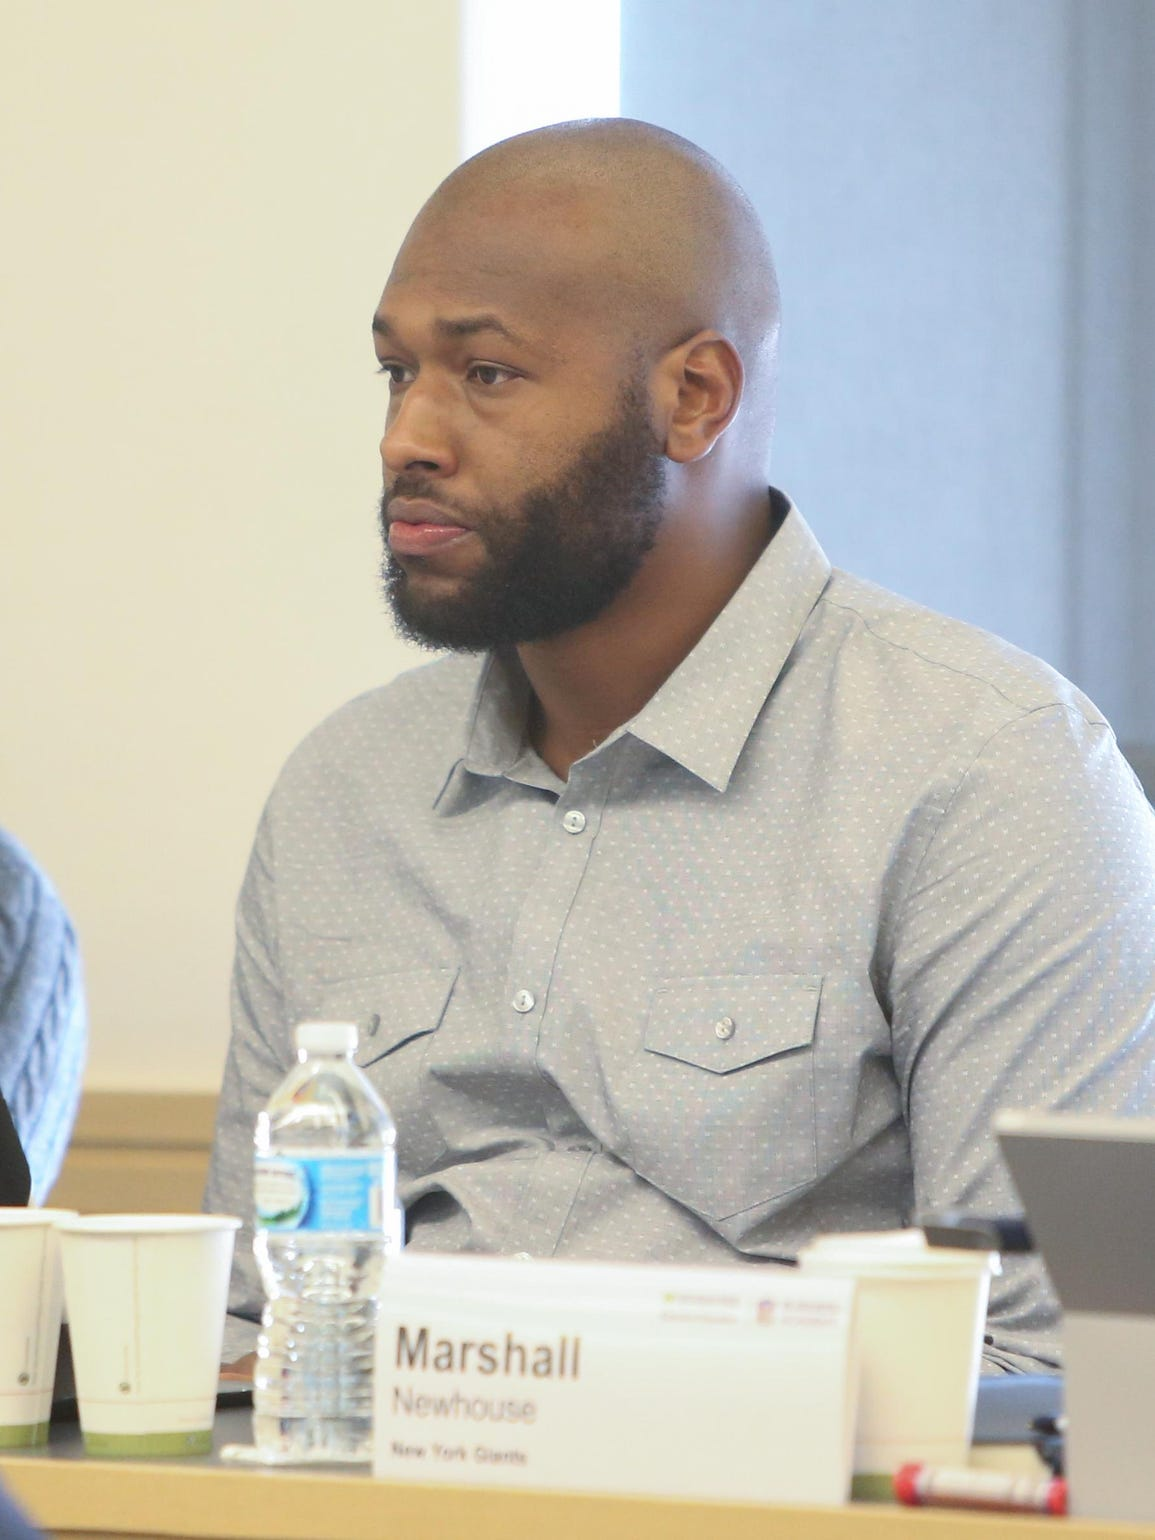 Lawrence Jackson attended the NFL Business Academy